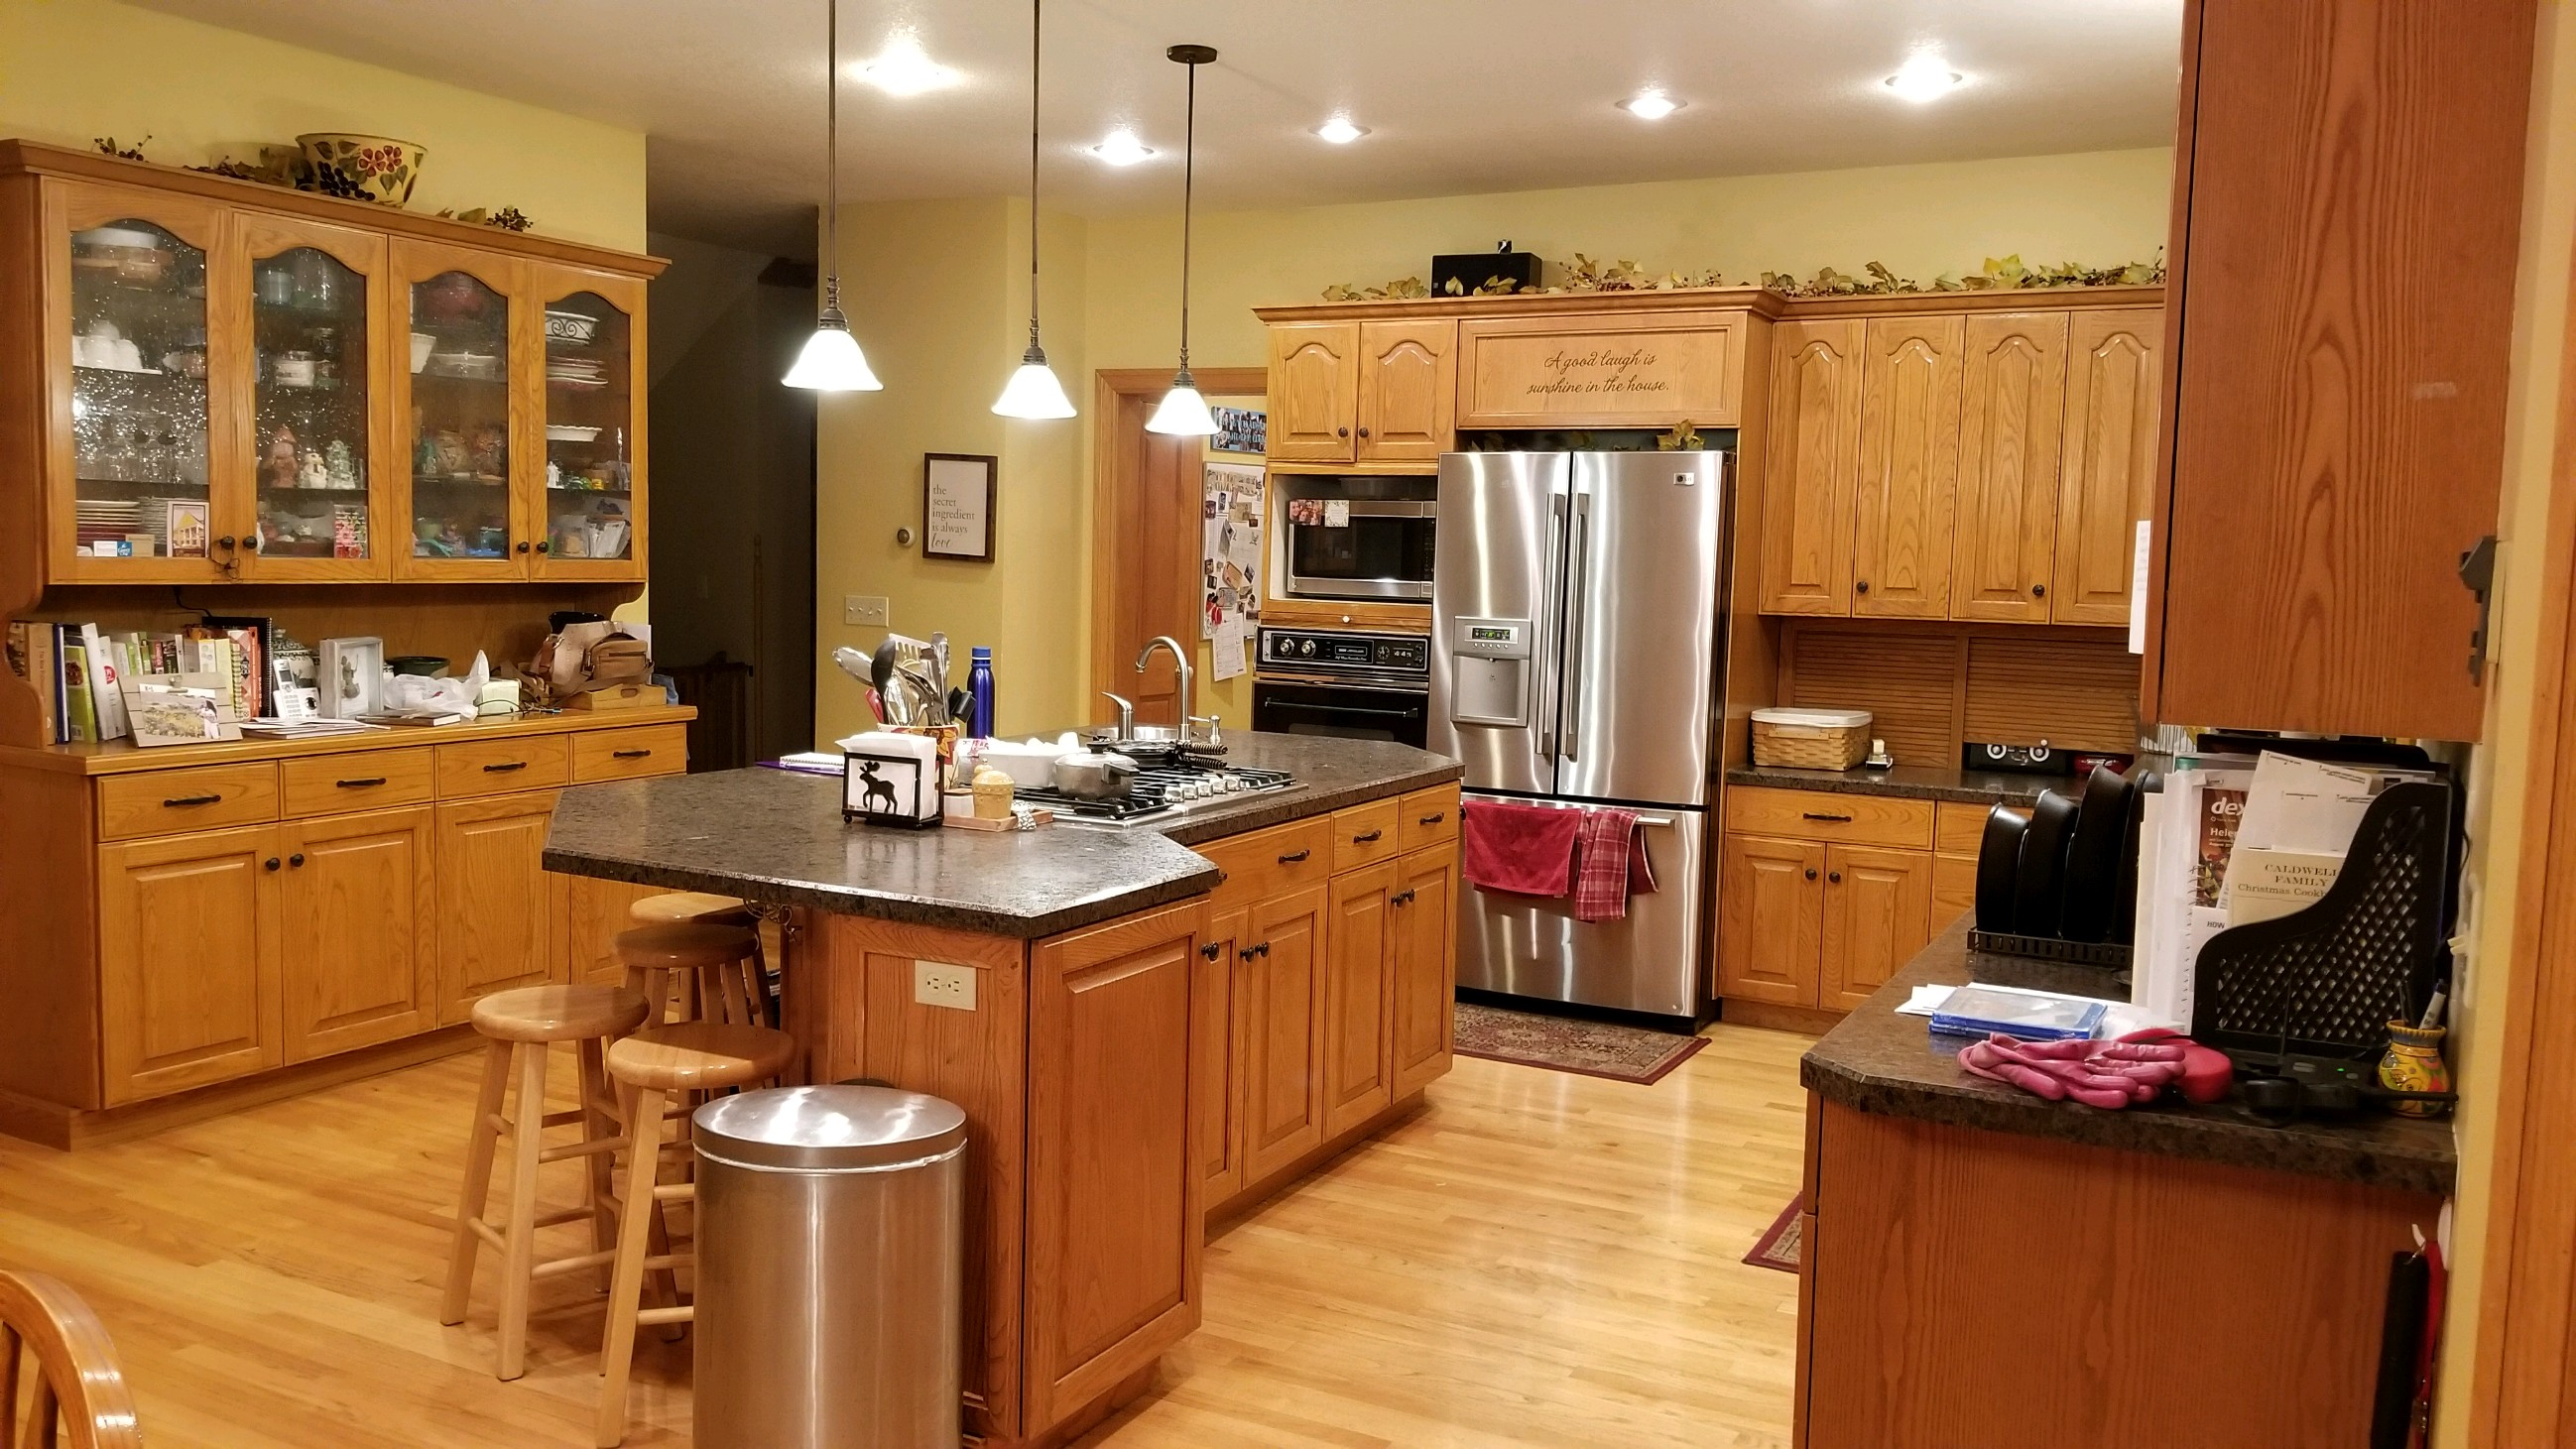 Kitchen Cabinet Wood Reconditioning Cabinet Refinishing And Wood Repair In Helena Montana